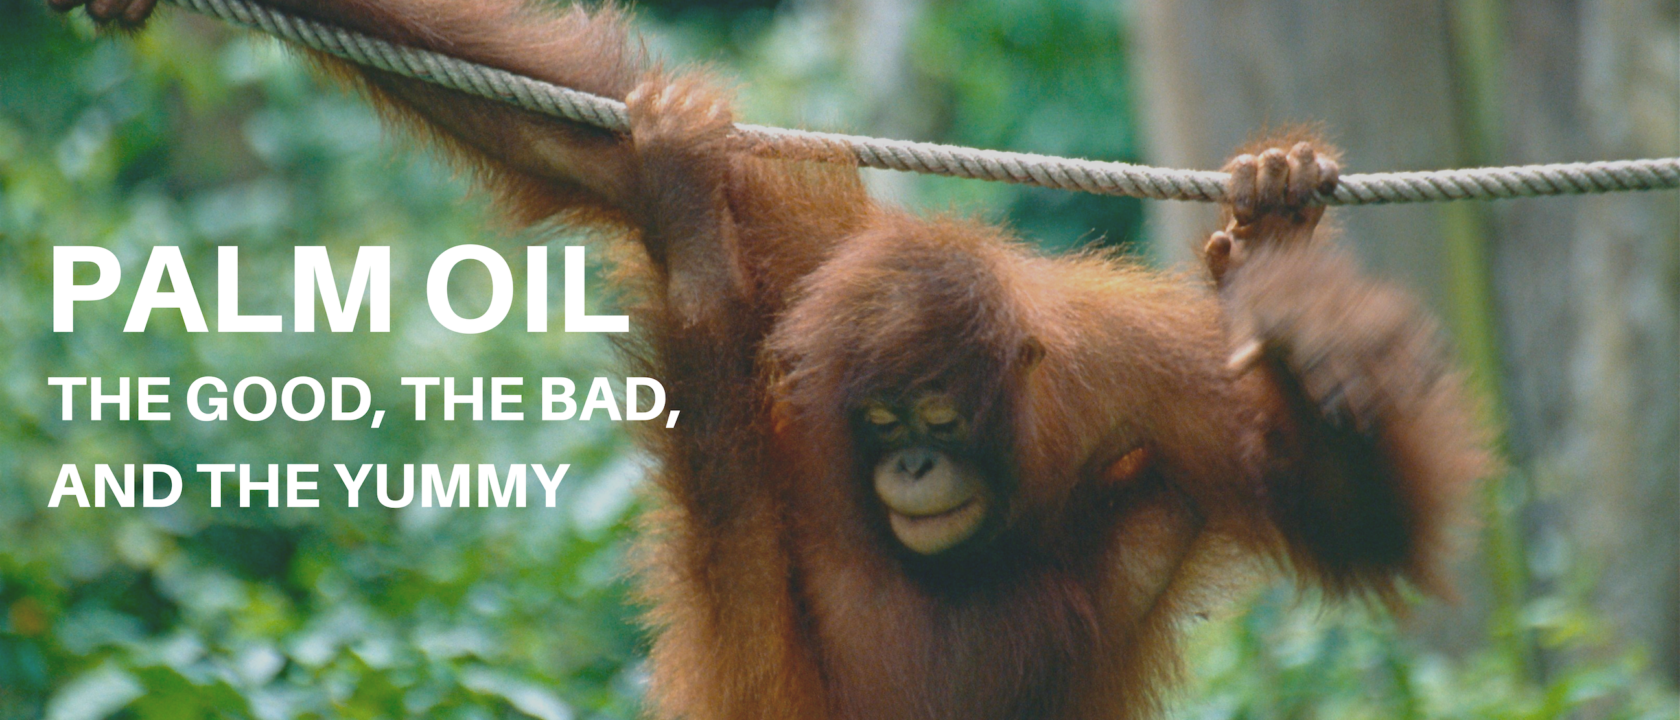 Palm Oil: The Good, The Bad, and The Yummy